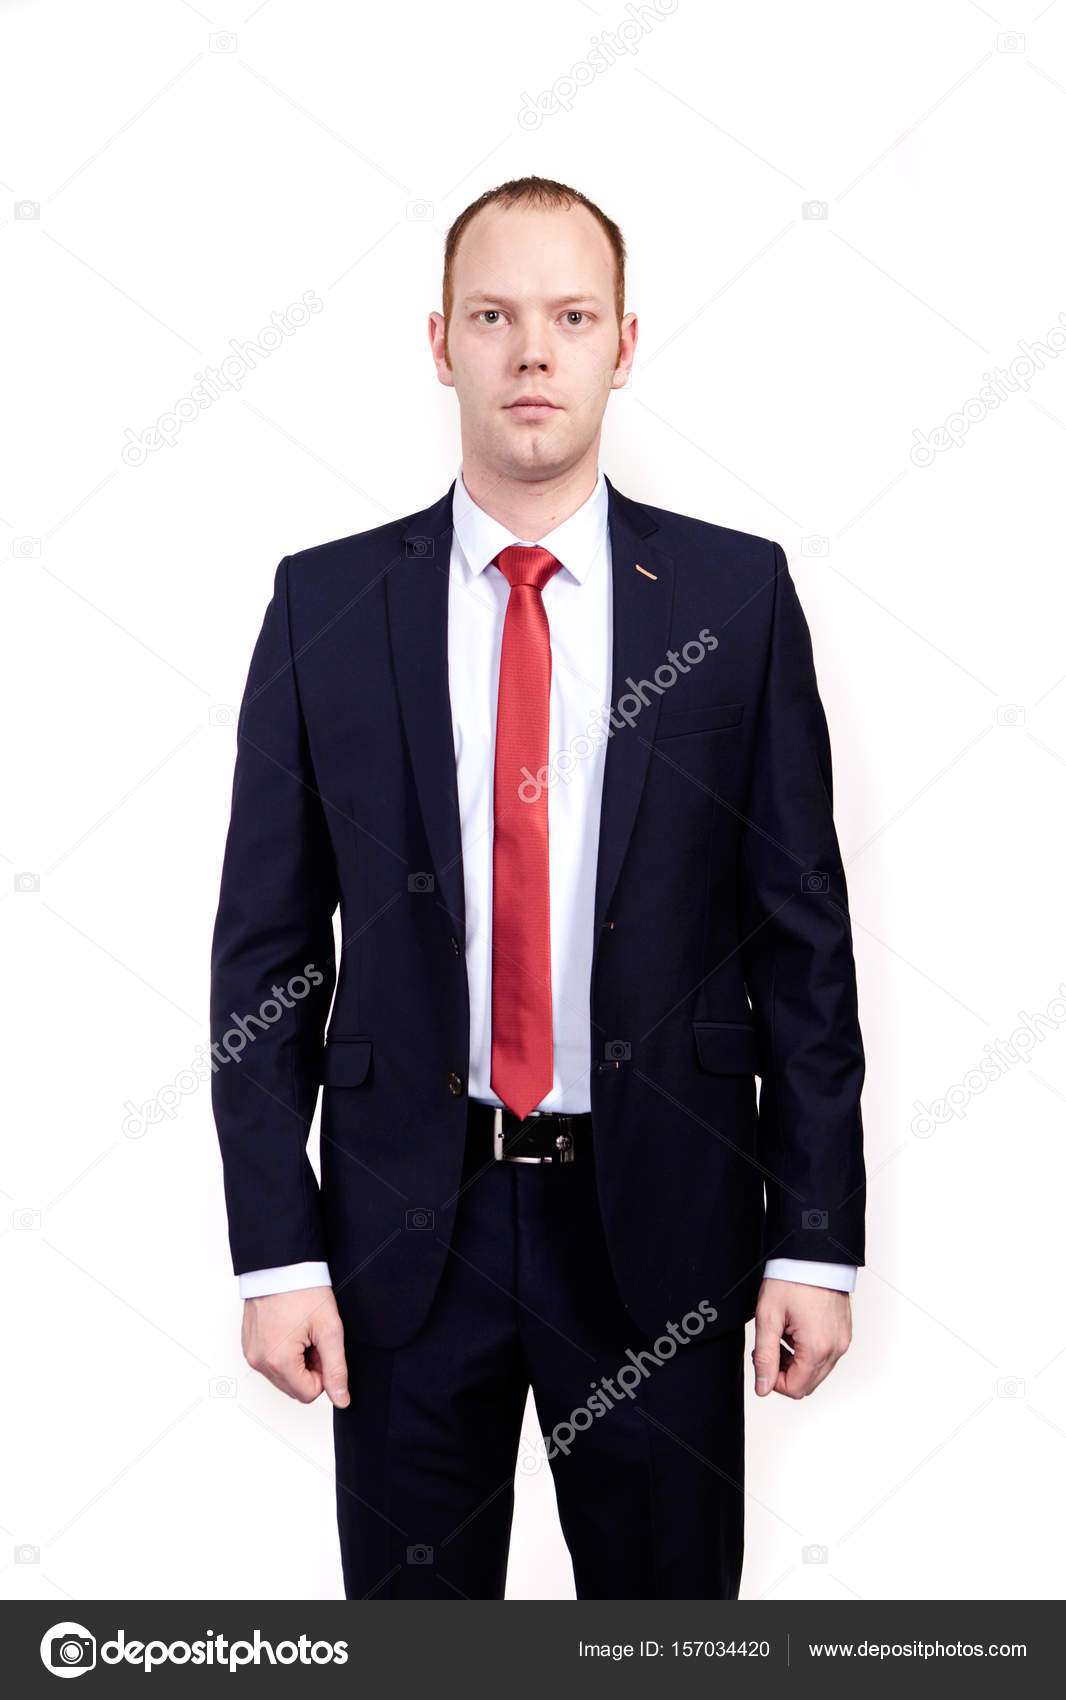 Respectable Senior Businessman Wearing Black Suit White Shirt And